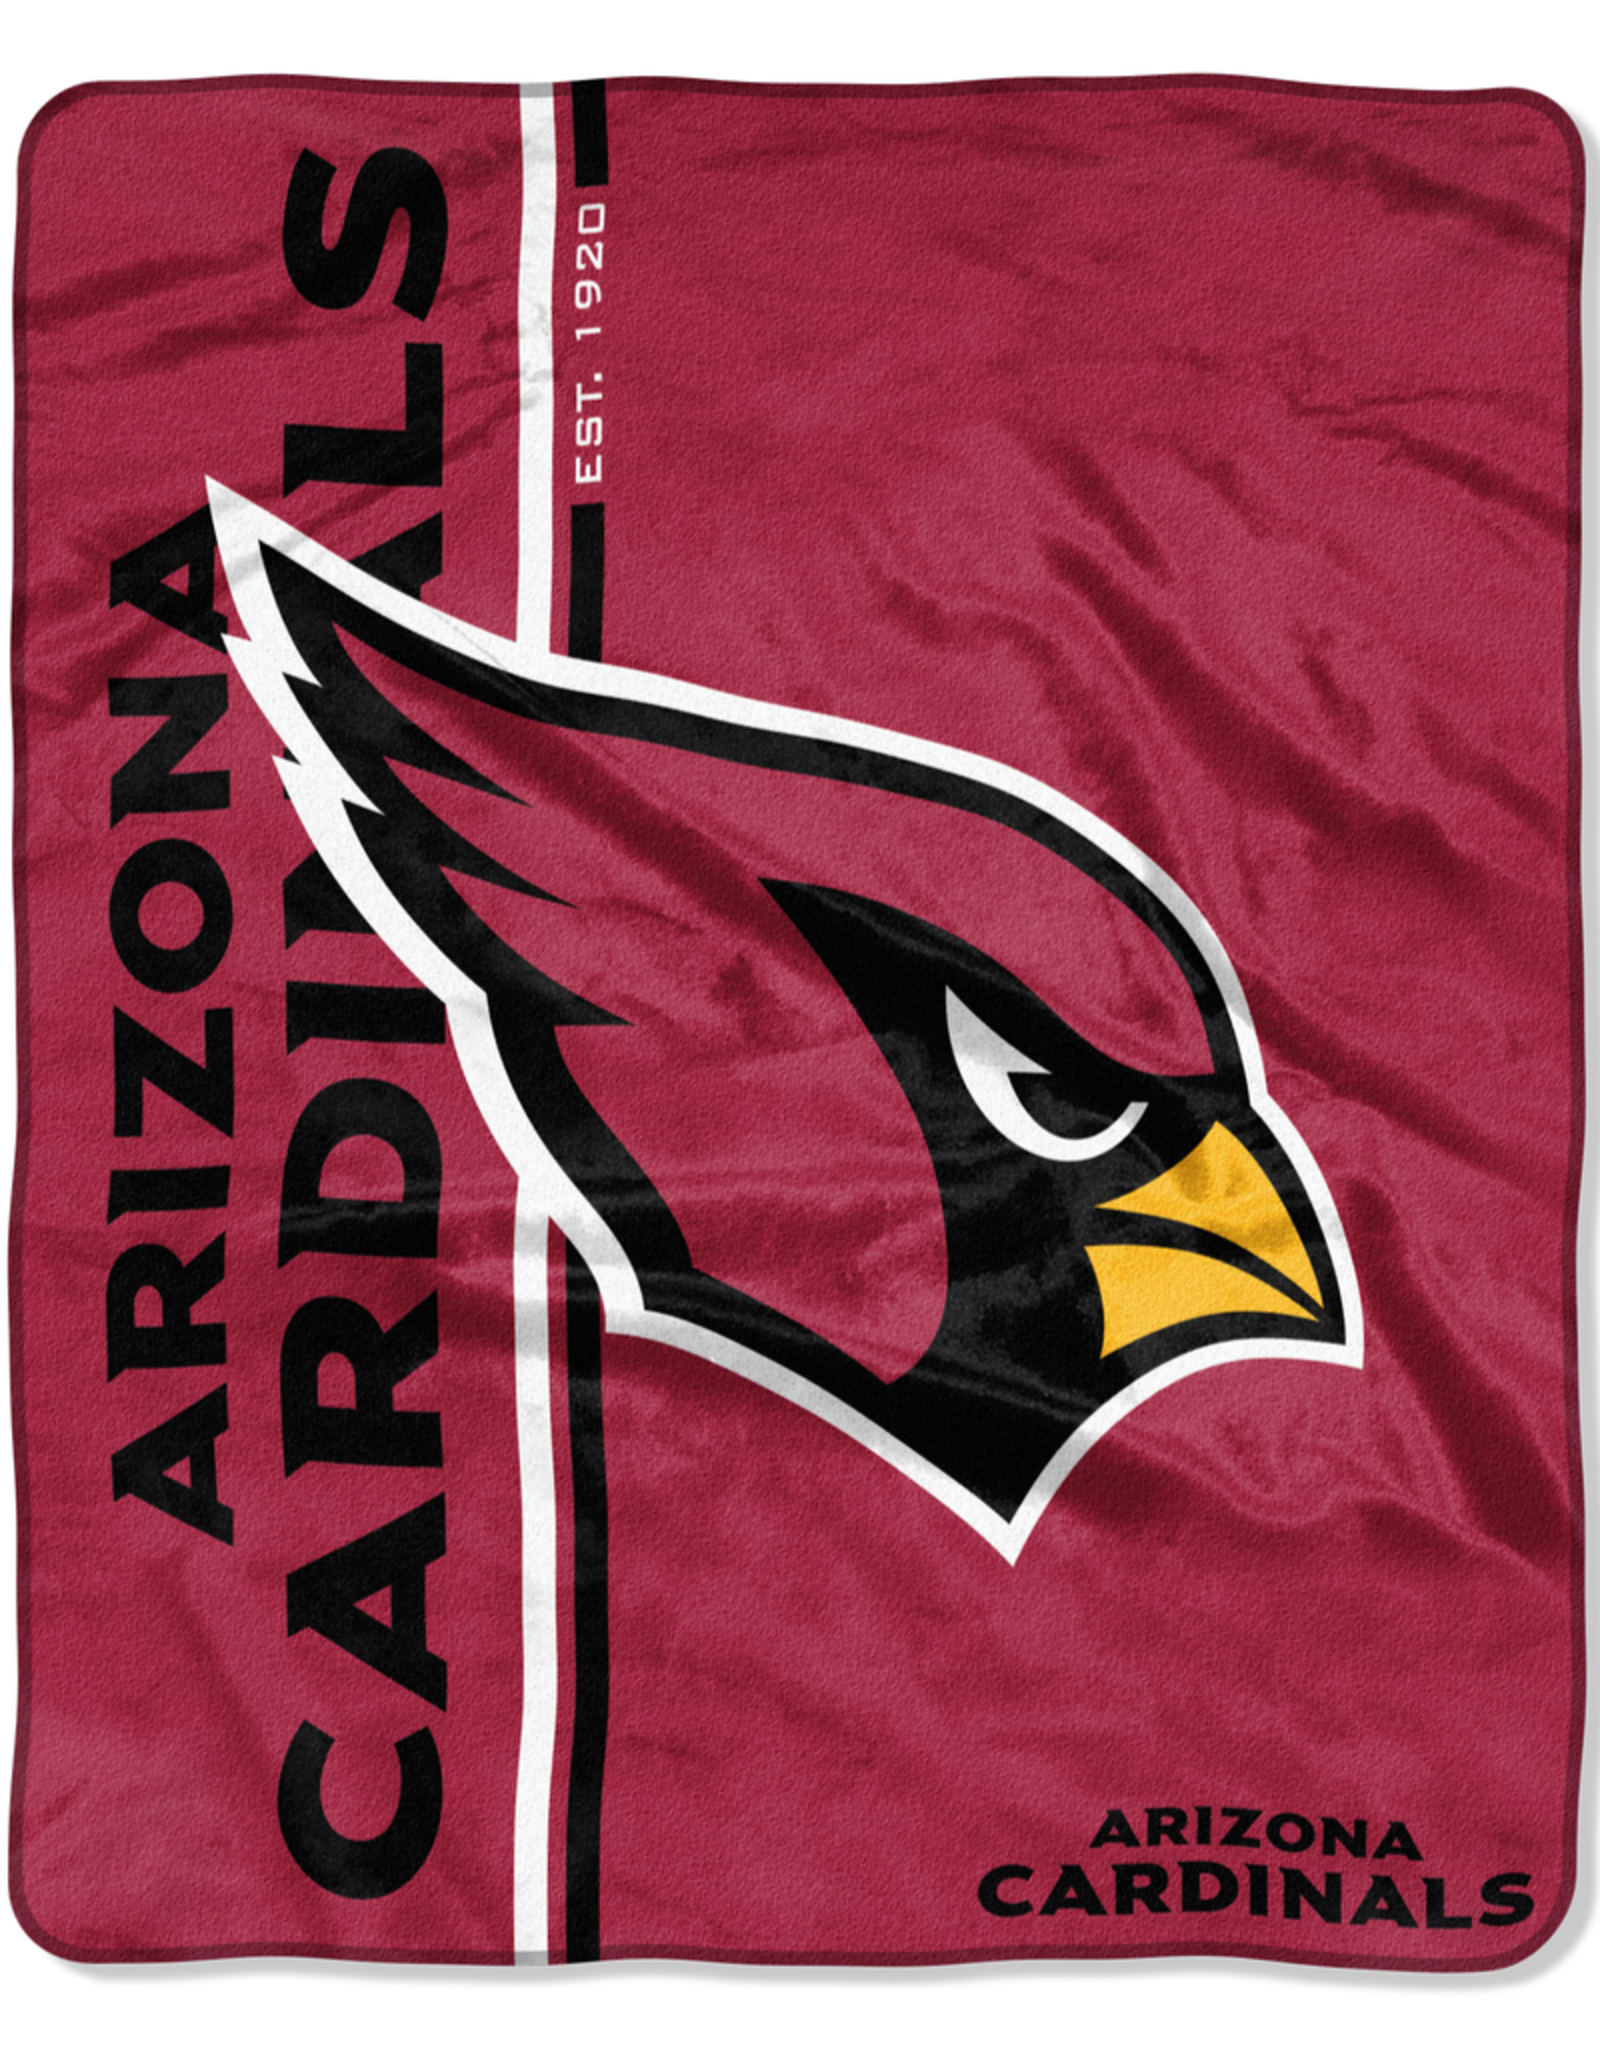 NORTHWEST Arizona Cardinals Restructure Royal Plush Raschel Throw